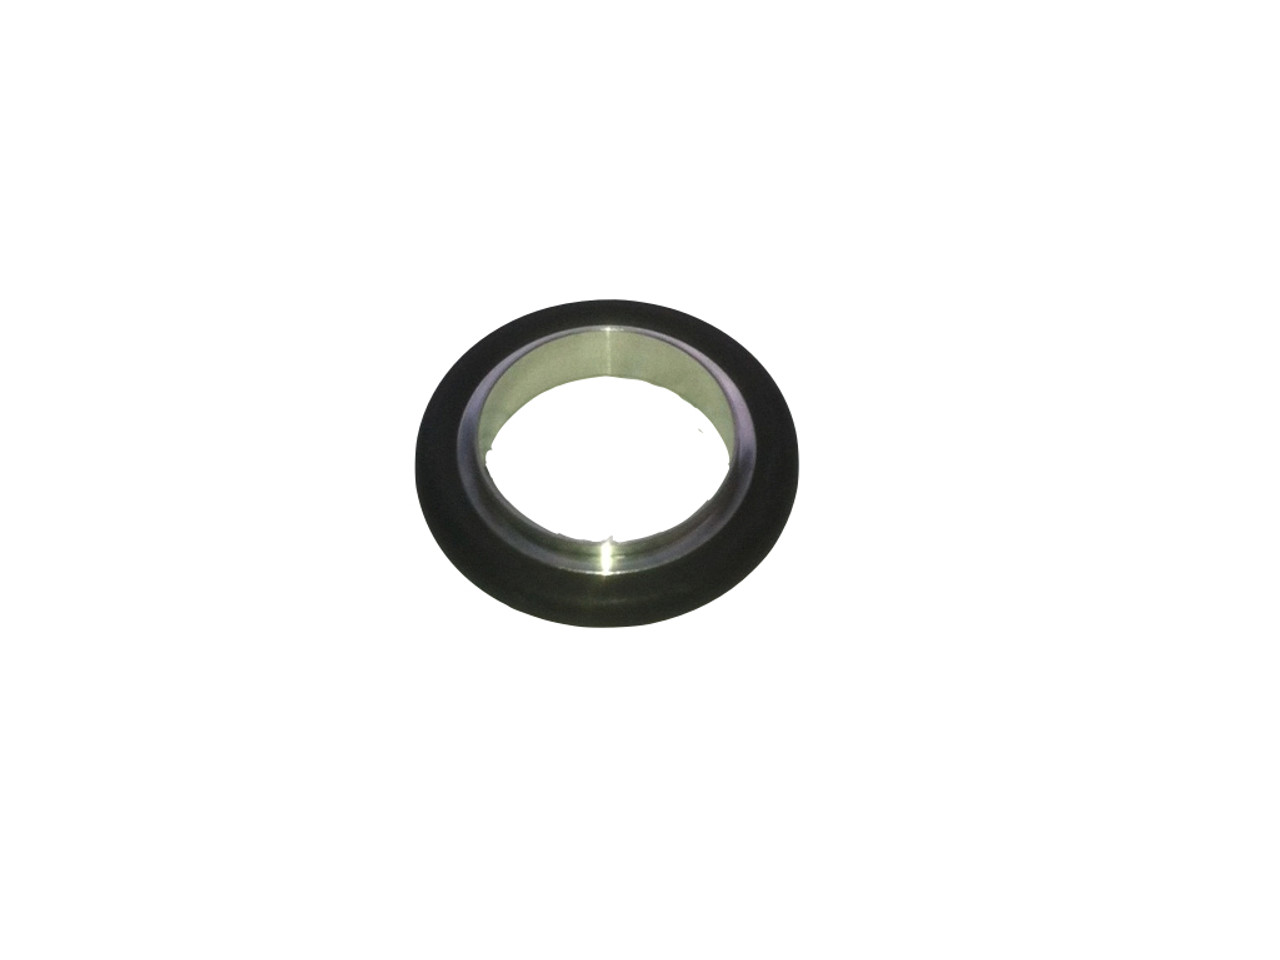 Centering Ring, 25mm Clamp